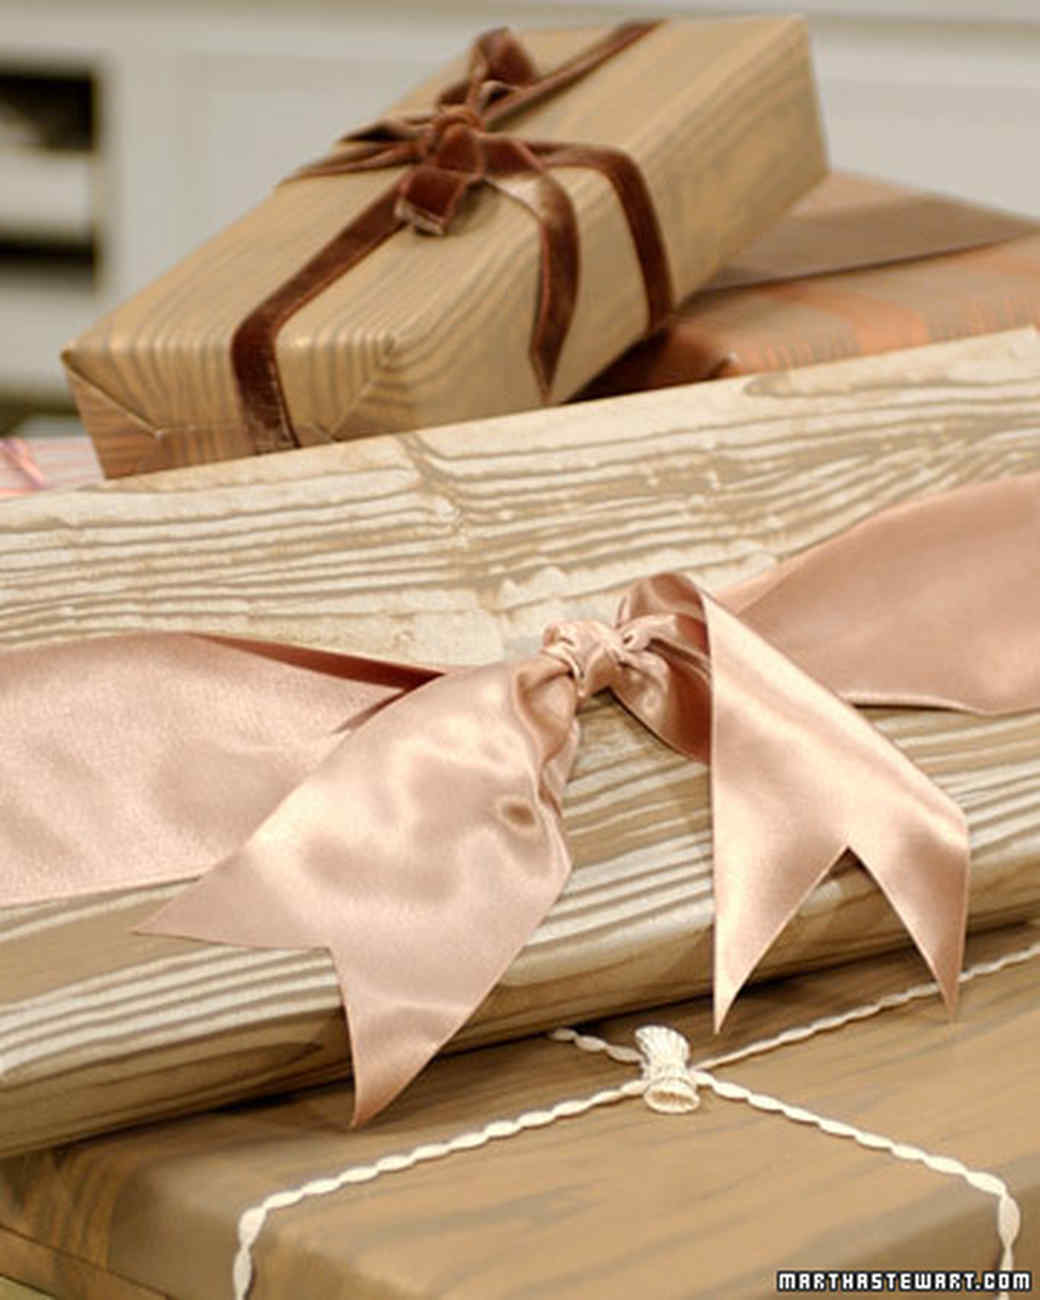 Wood-Grain Wrapping Paper